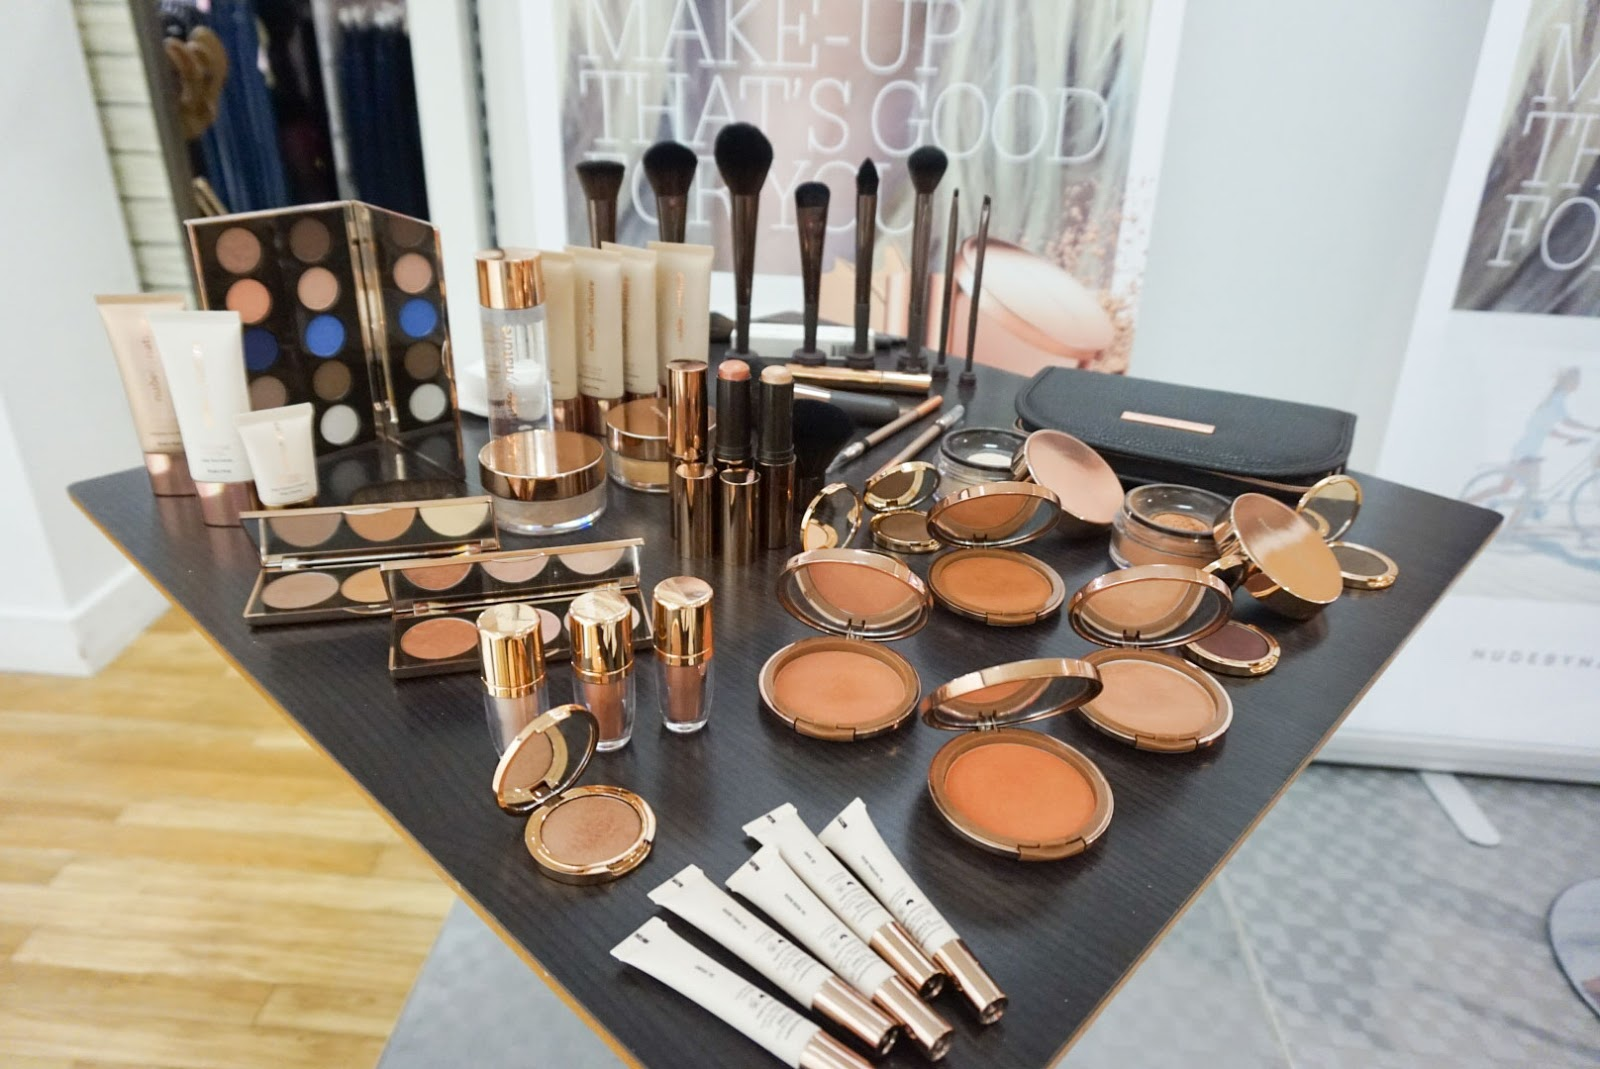 Make Up That's Good For You - Nude By Nature Launches in Debenhams, Belfast